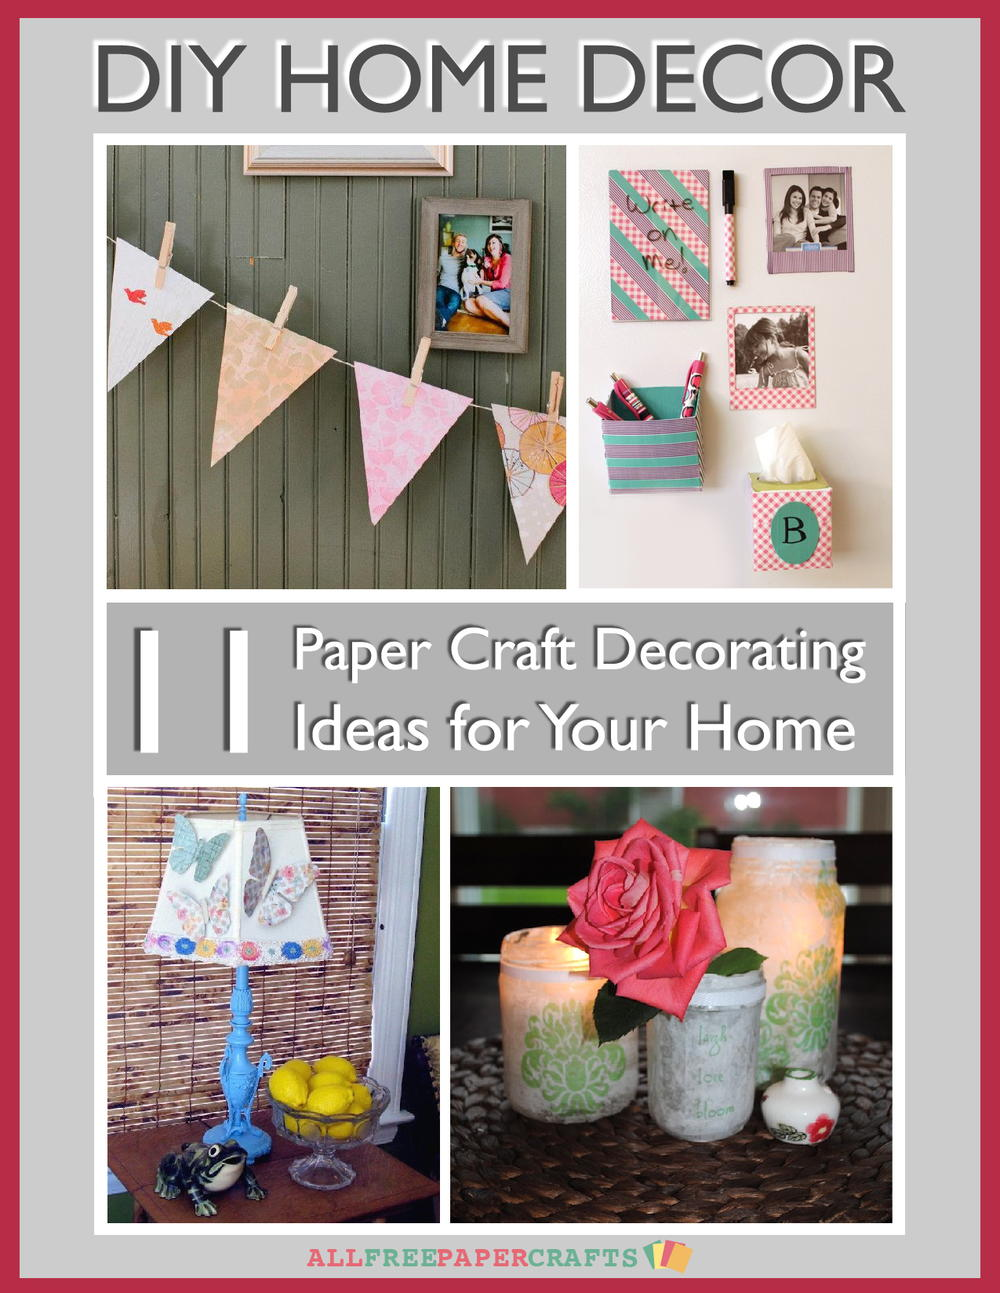 DIY Home Decor: 11 Paper Craft Decorating Ideas For Your Home Free EBook |  AllFreePaperCrafts.com